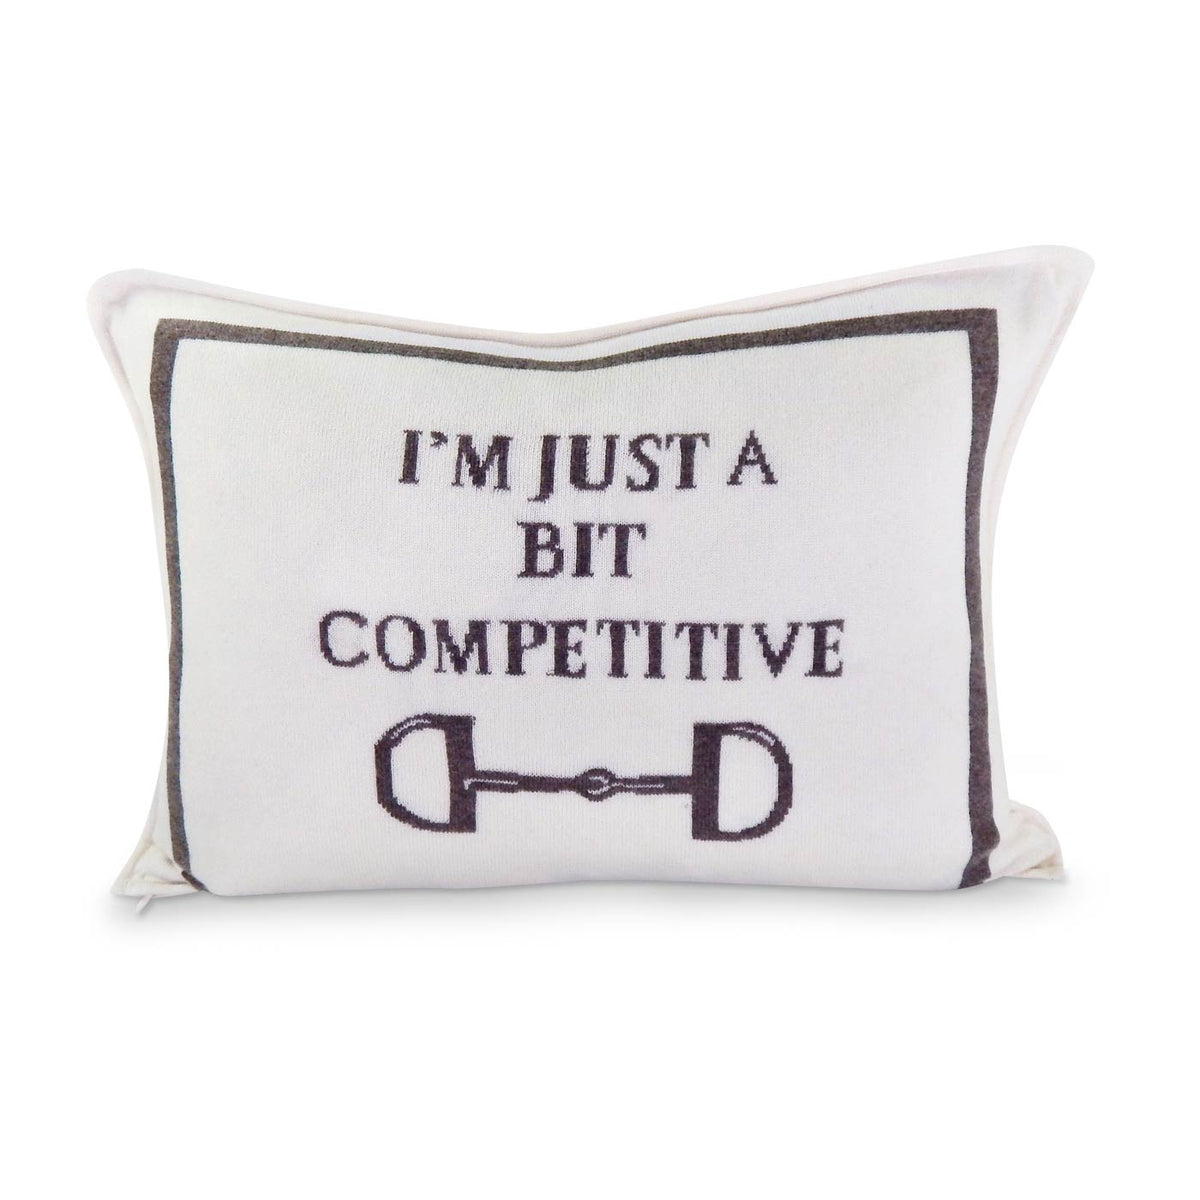 Luxe A Bit Competitive Lumbar Pillow Cover